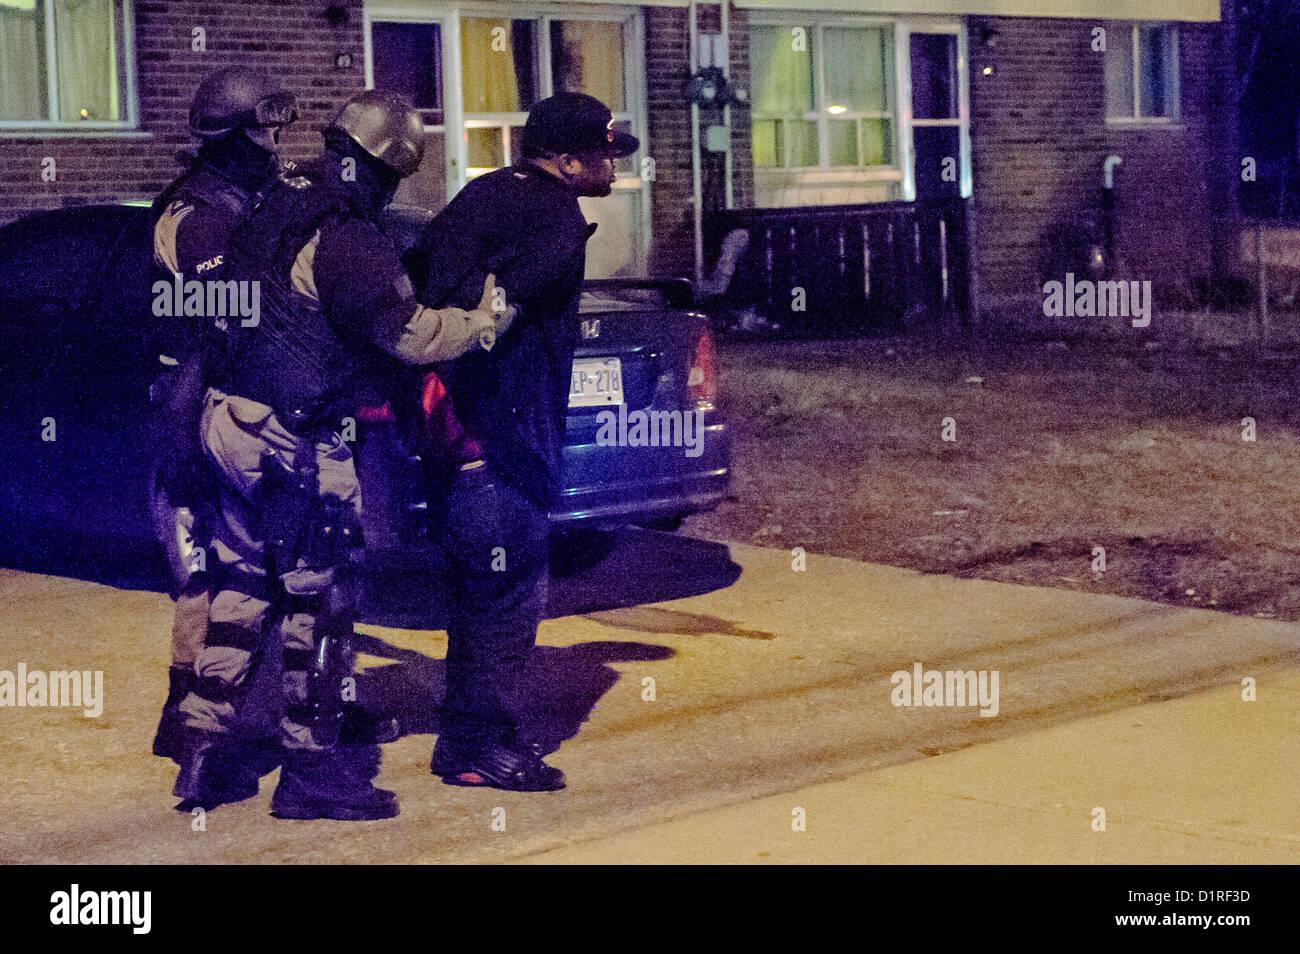 Heavily armed members of Toronto Police execute a search warrant arresting more than a dozen people - Stock Image